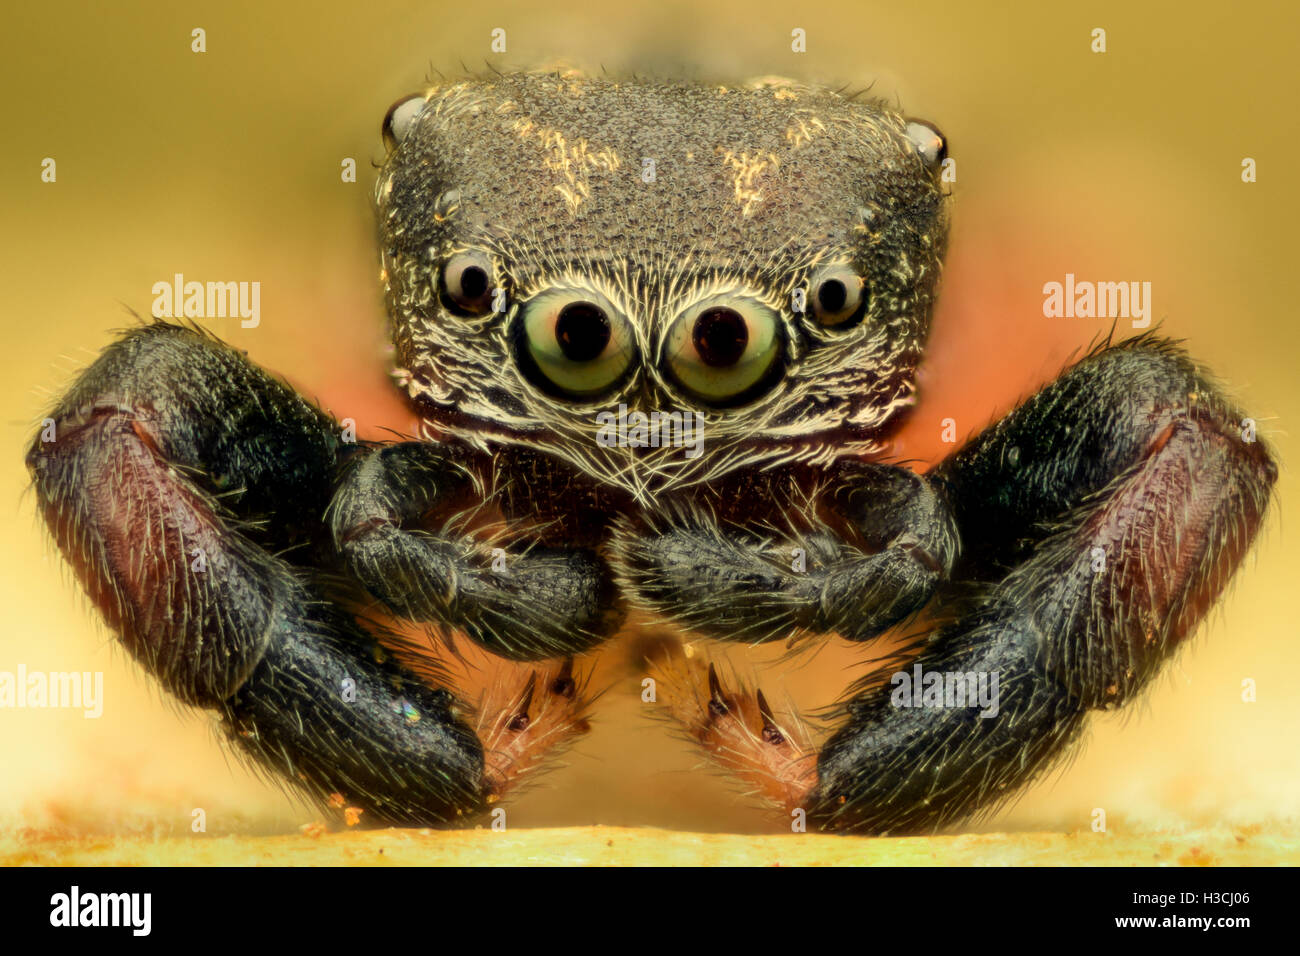 Extreme magnification - Jumping Spider - Stock Image